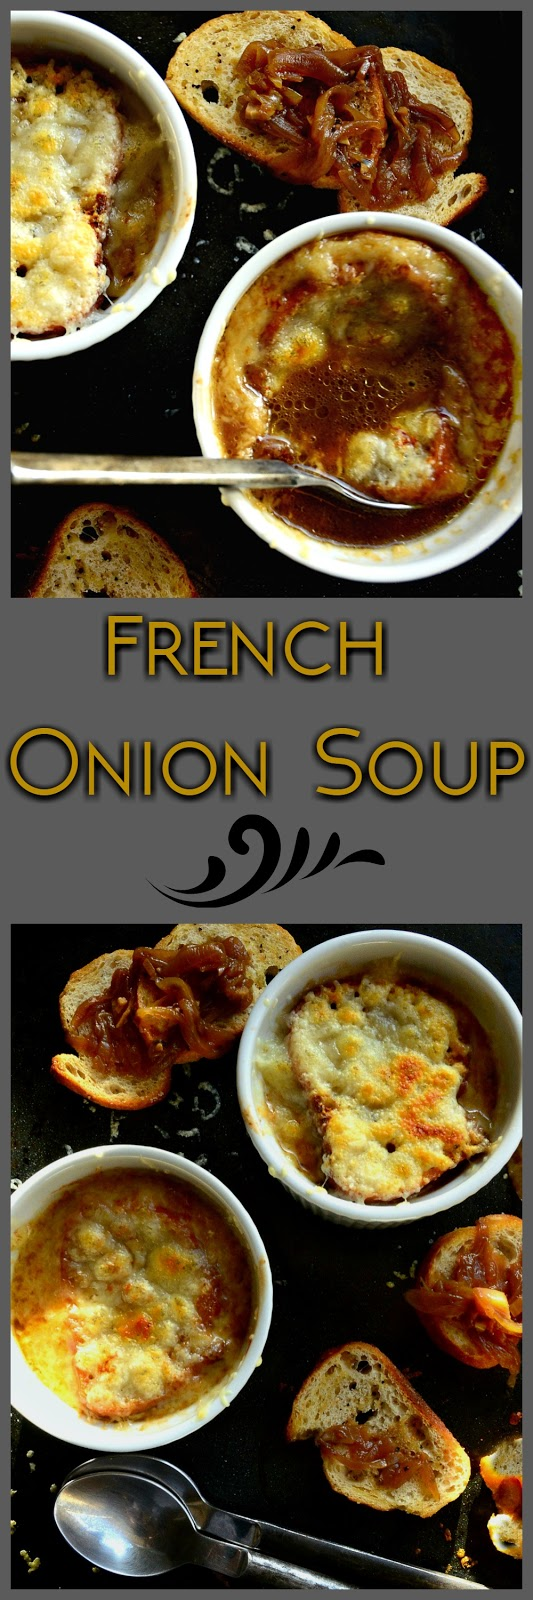 Soup, French Onion soup